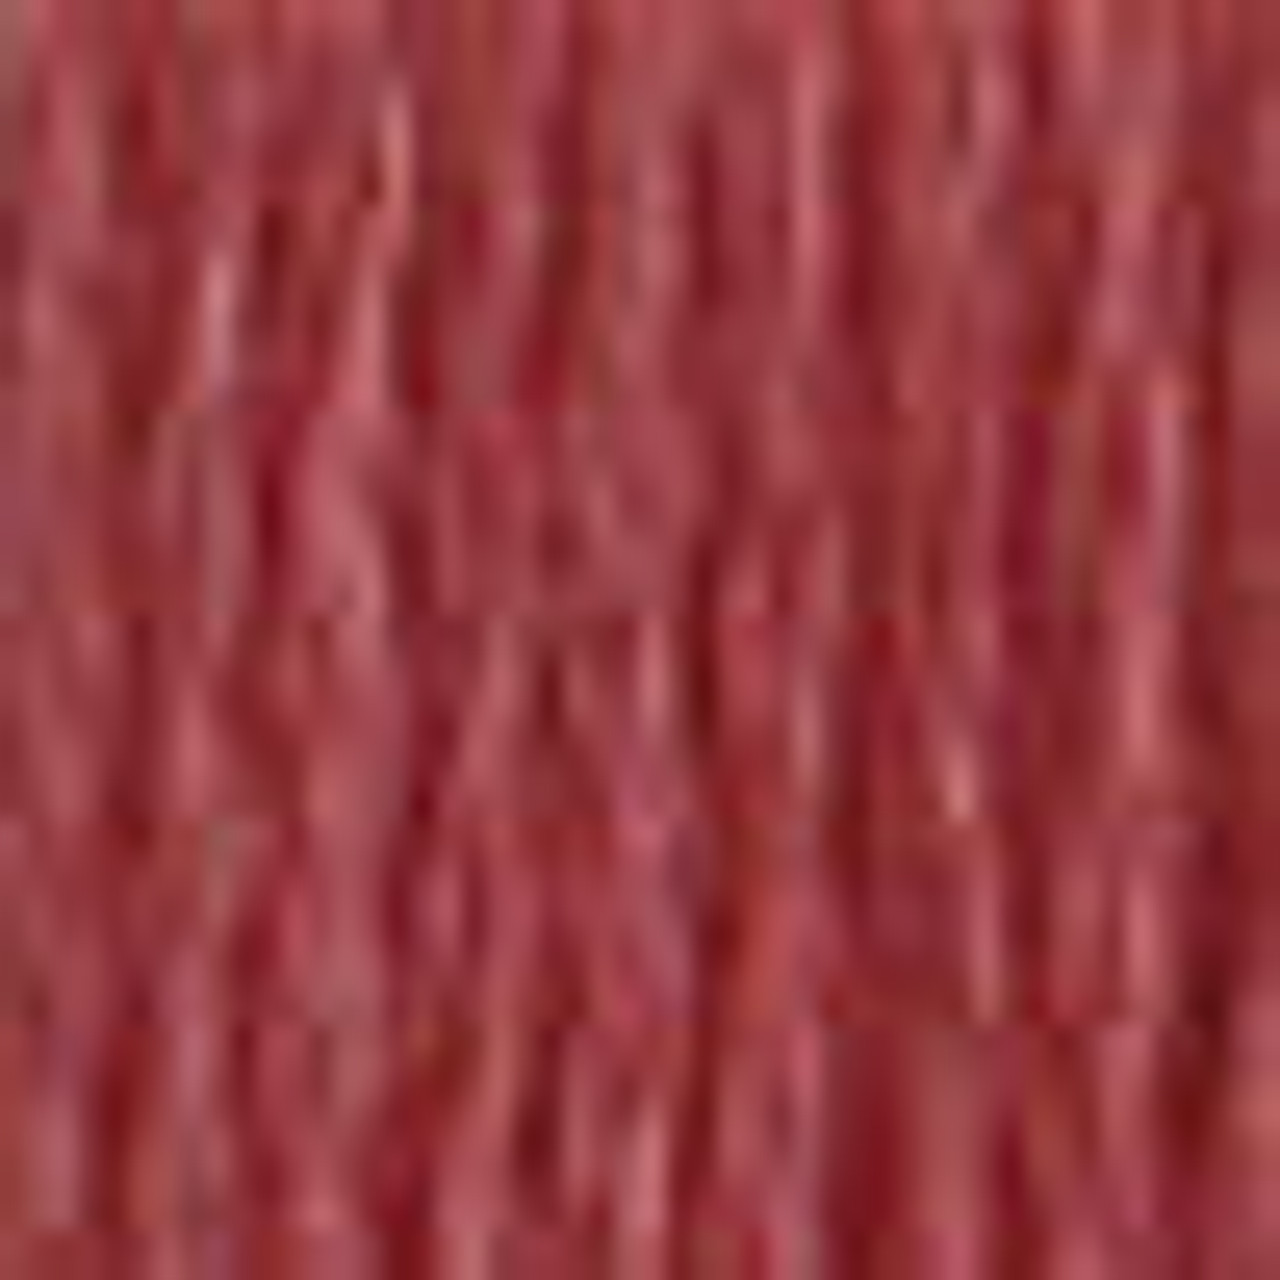 DMC # 315 Medium Dark Antique Mauve Floss / Thread